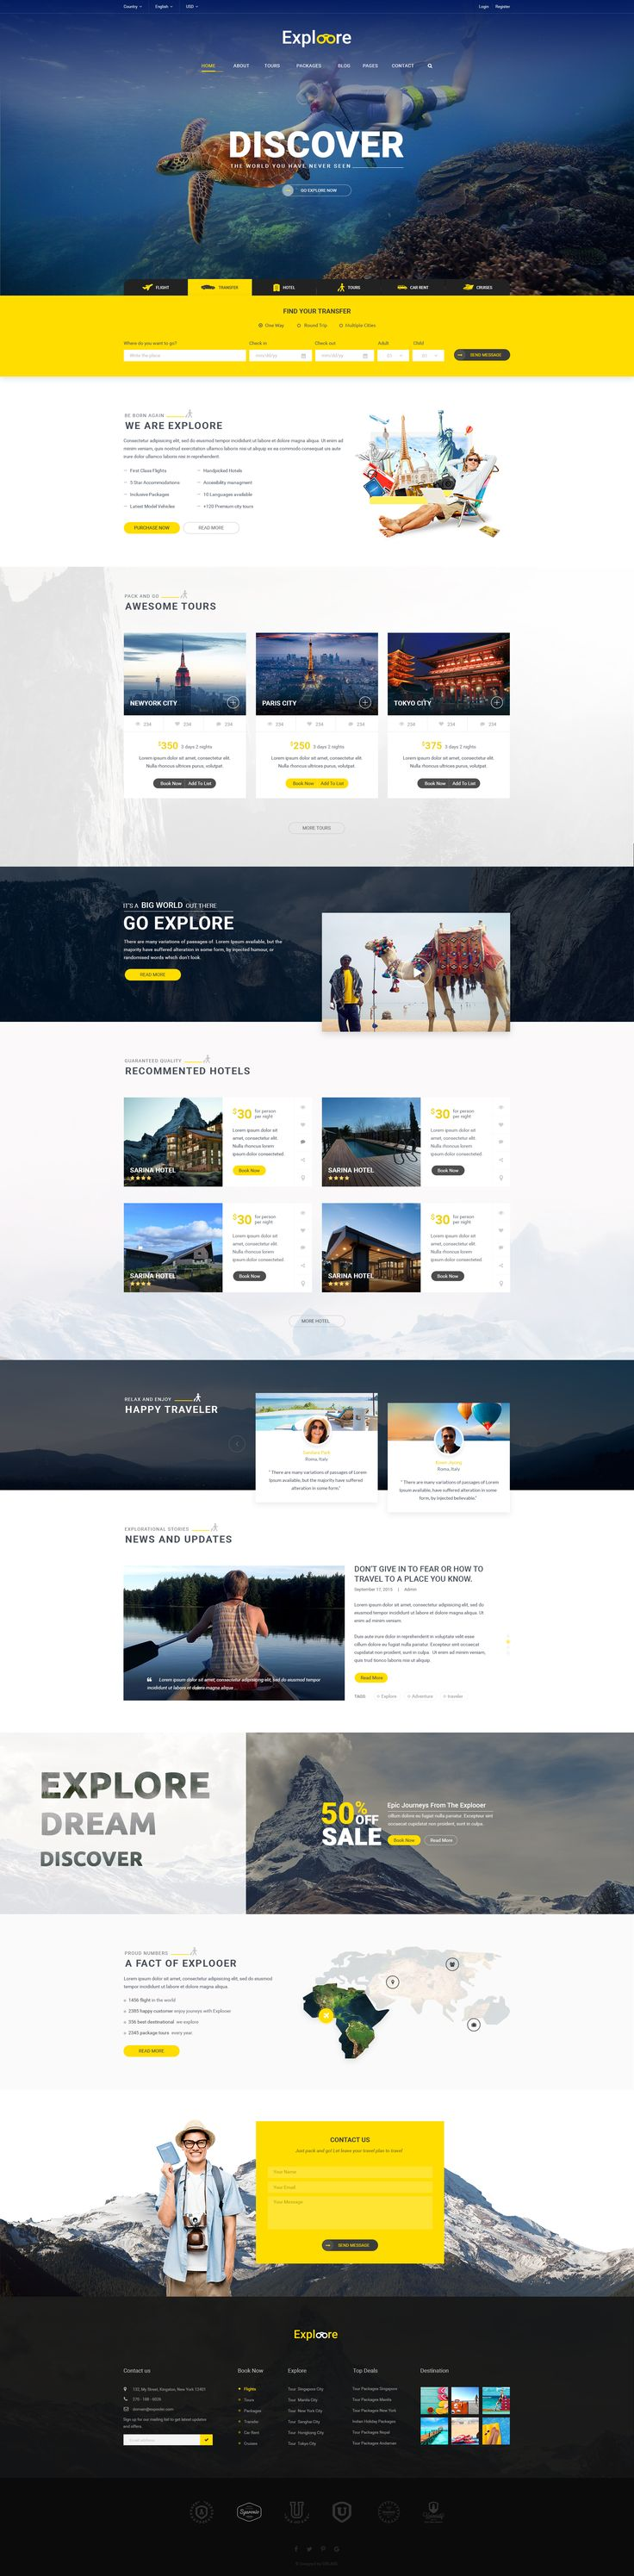 여행, 예약 홈페이지//Introduction Exploore is modern PSD template has been designed for travel website, travel agency, travel blog, etc… It comes with 15 PSD files and a potential to grow with more features in the futu...